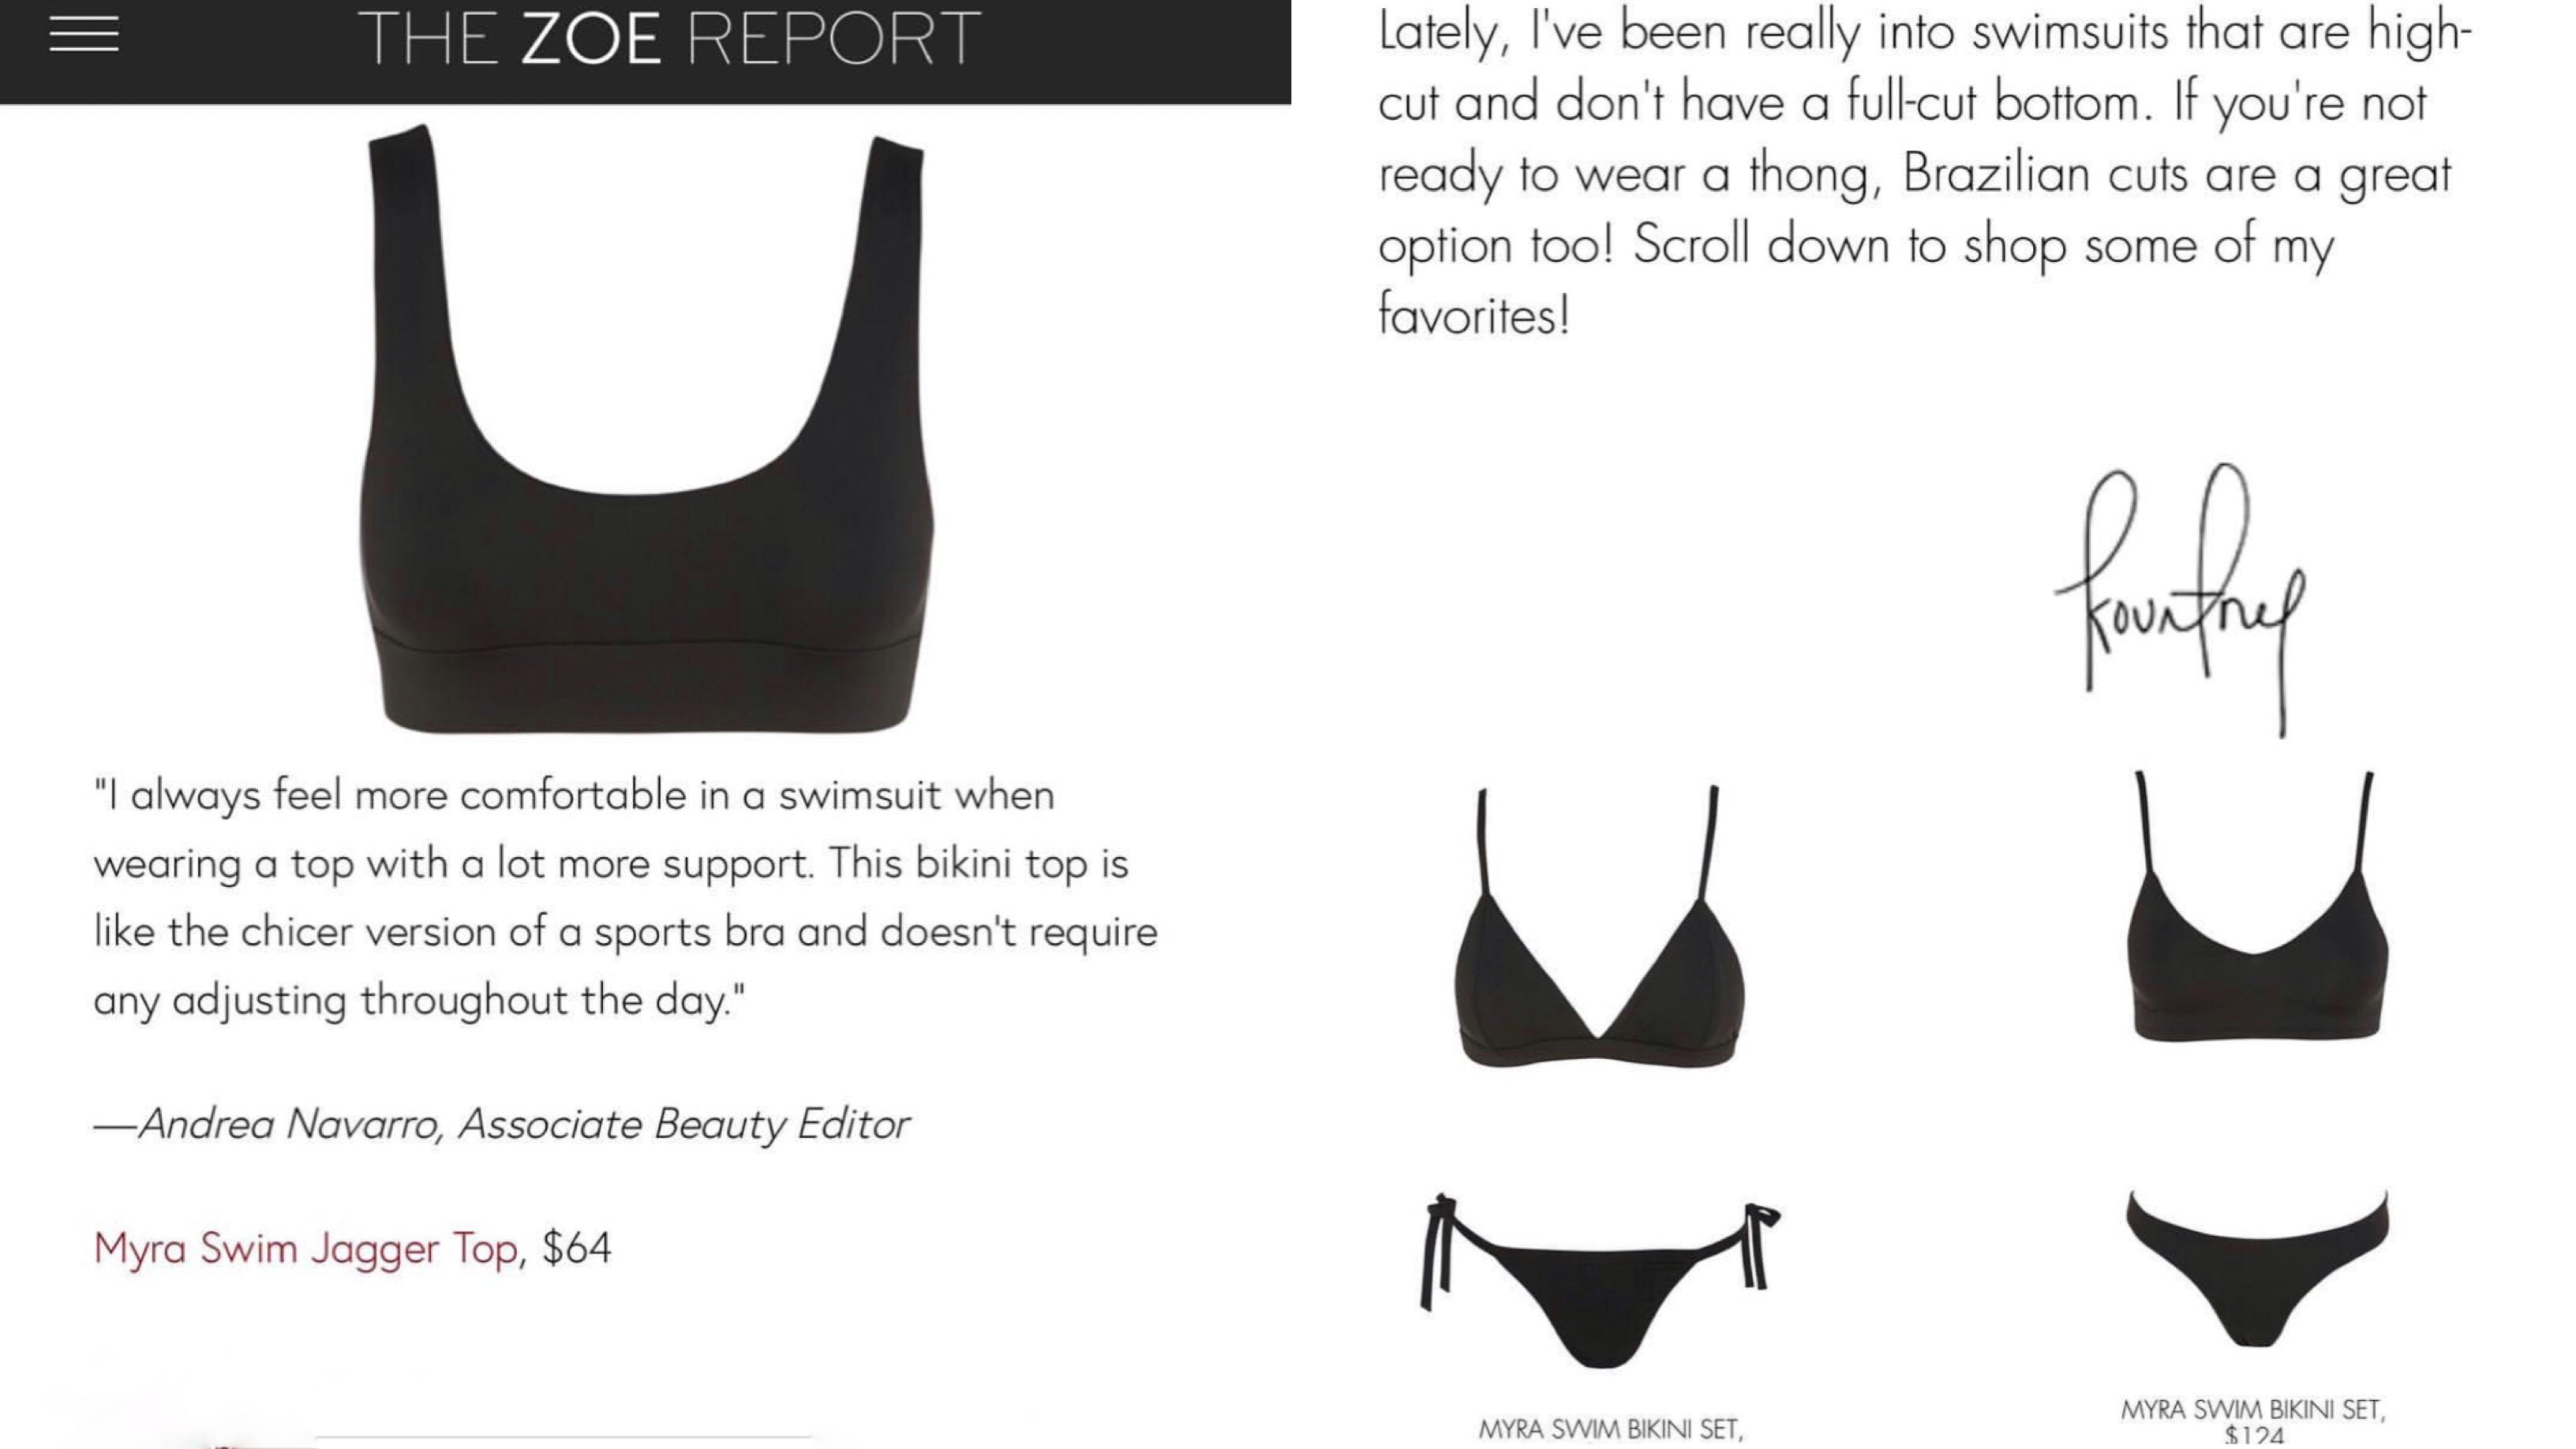 The Zoe Report bathing suits